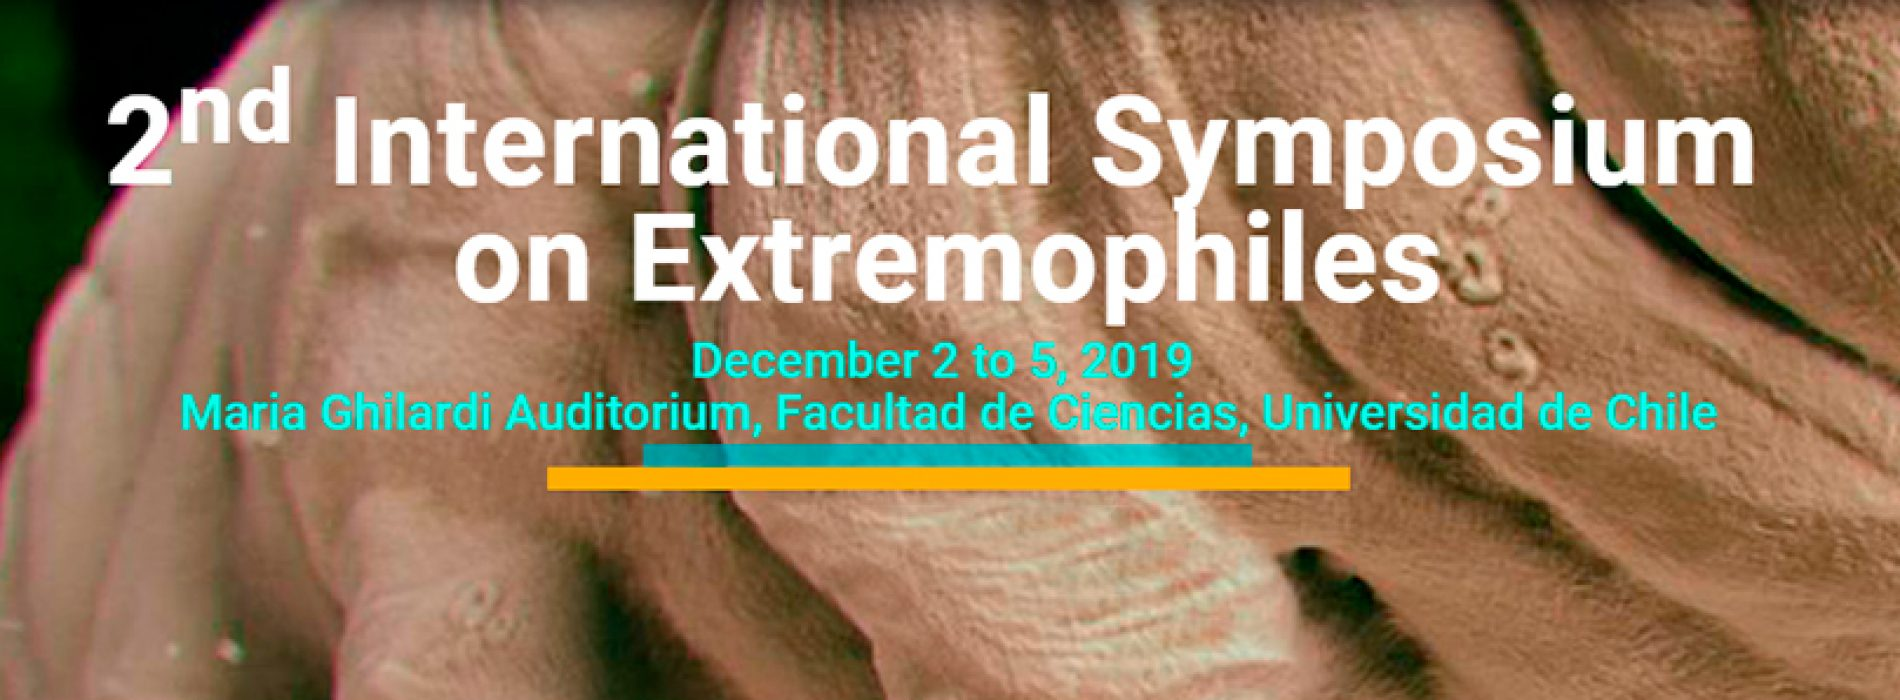 2nd International Symposium on Extreme Environments and Extremophile Organisms